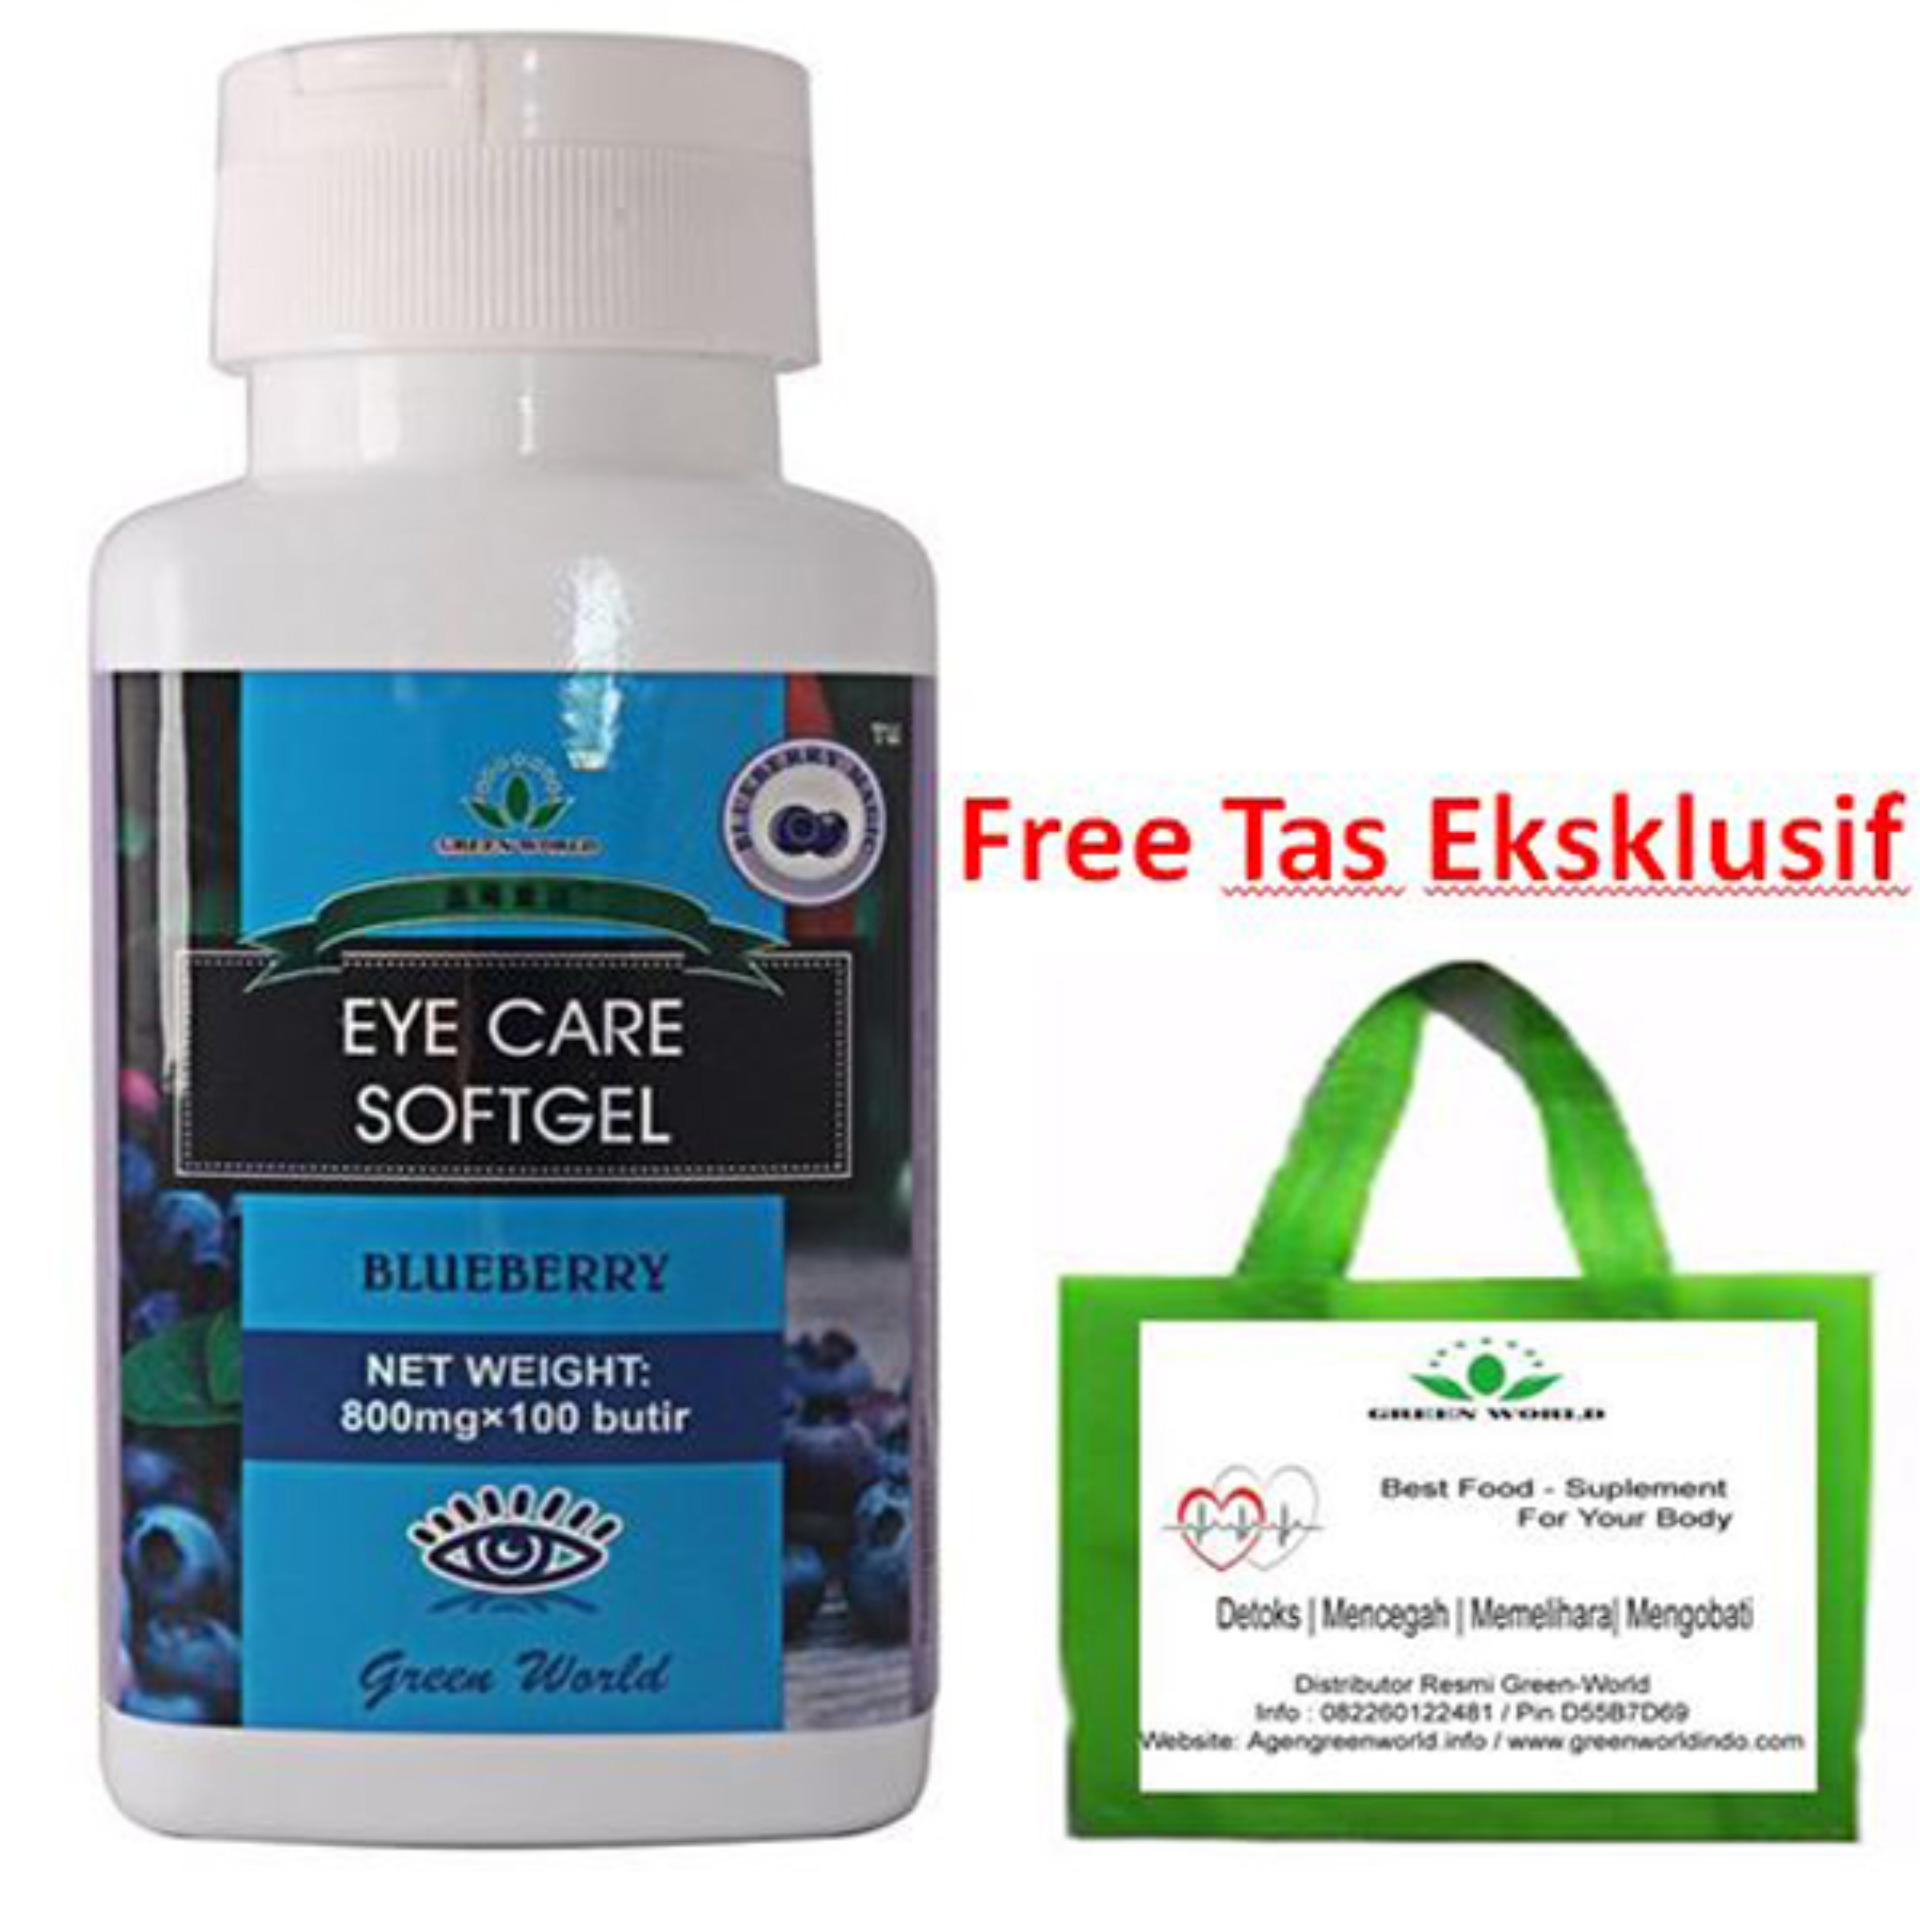 Top 10 Green World Eye Care Softgel Bonus Tas Ekslusif Online